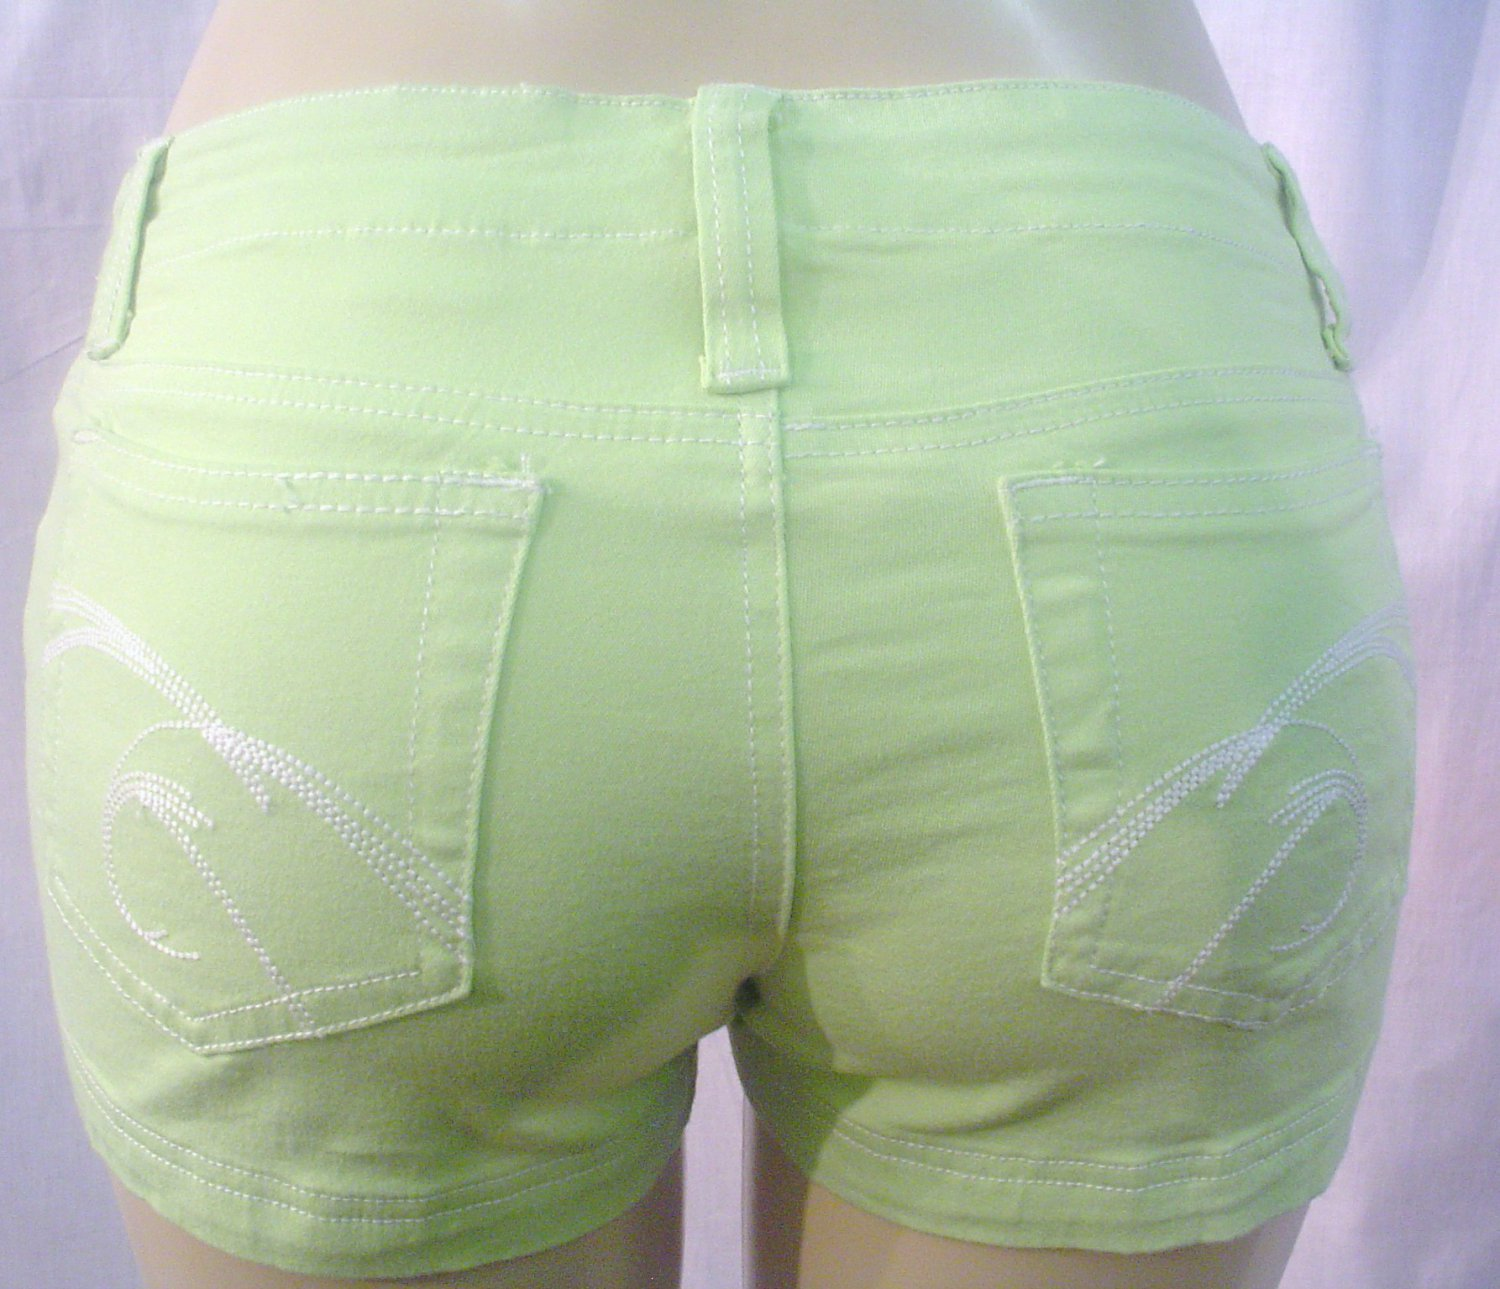 NEW ultra stretchy soft colored denim knit shorts, green  sz 9